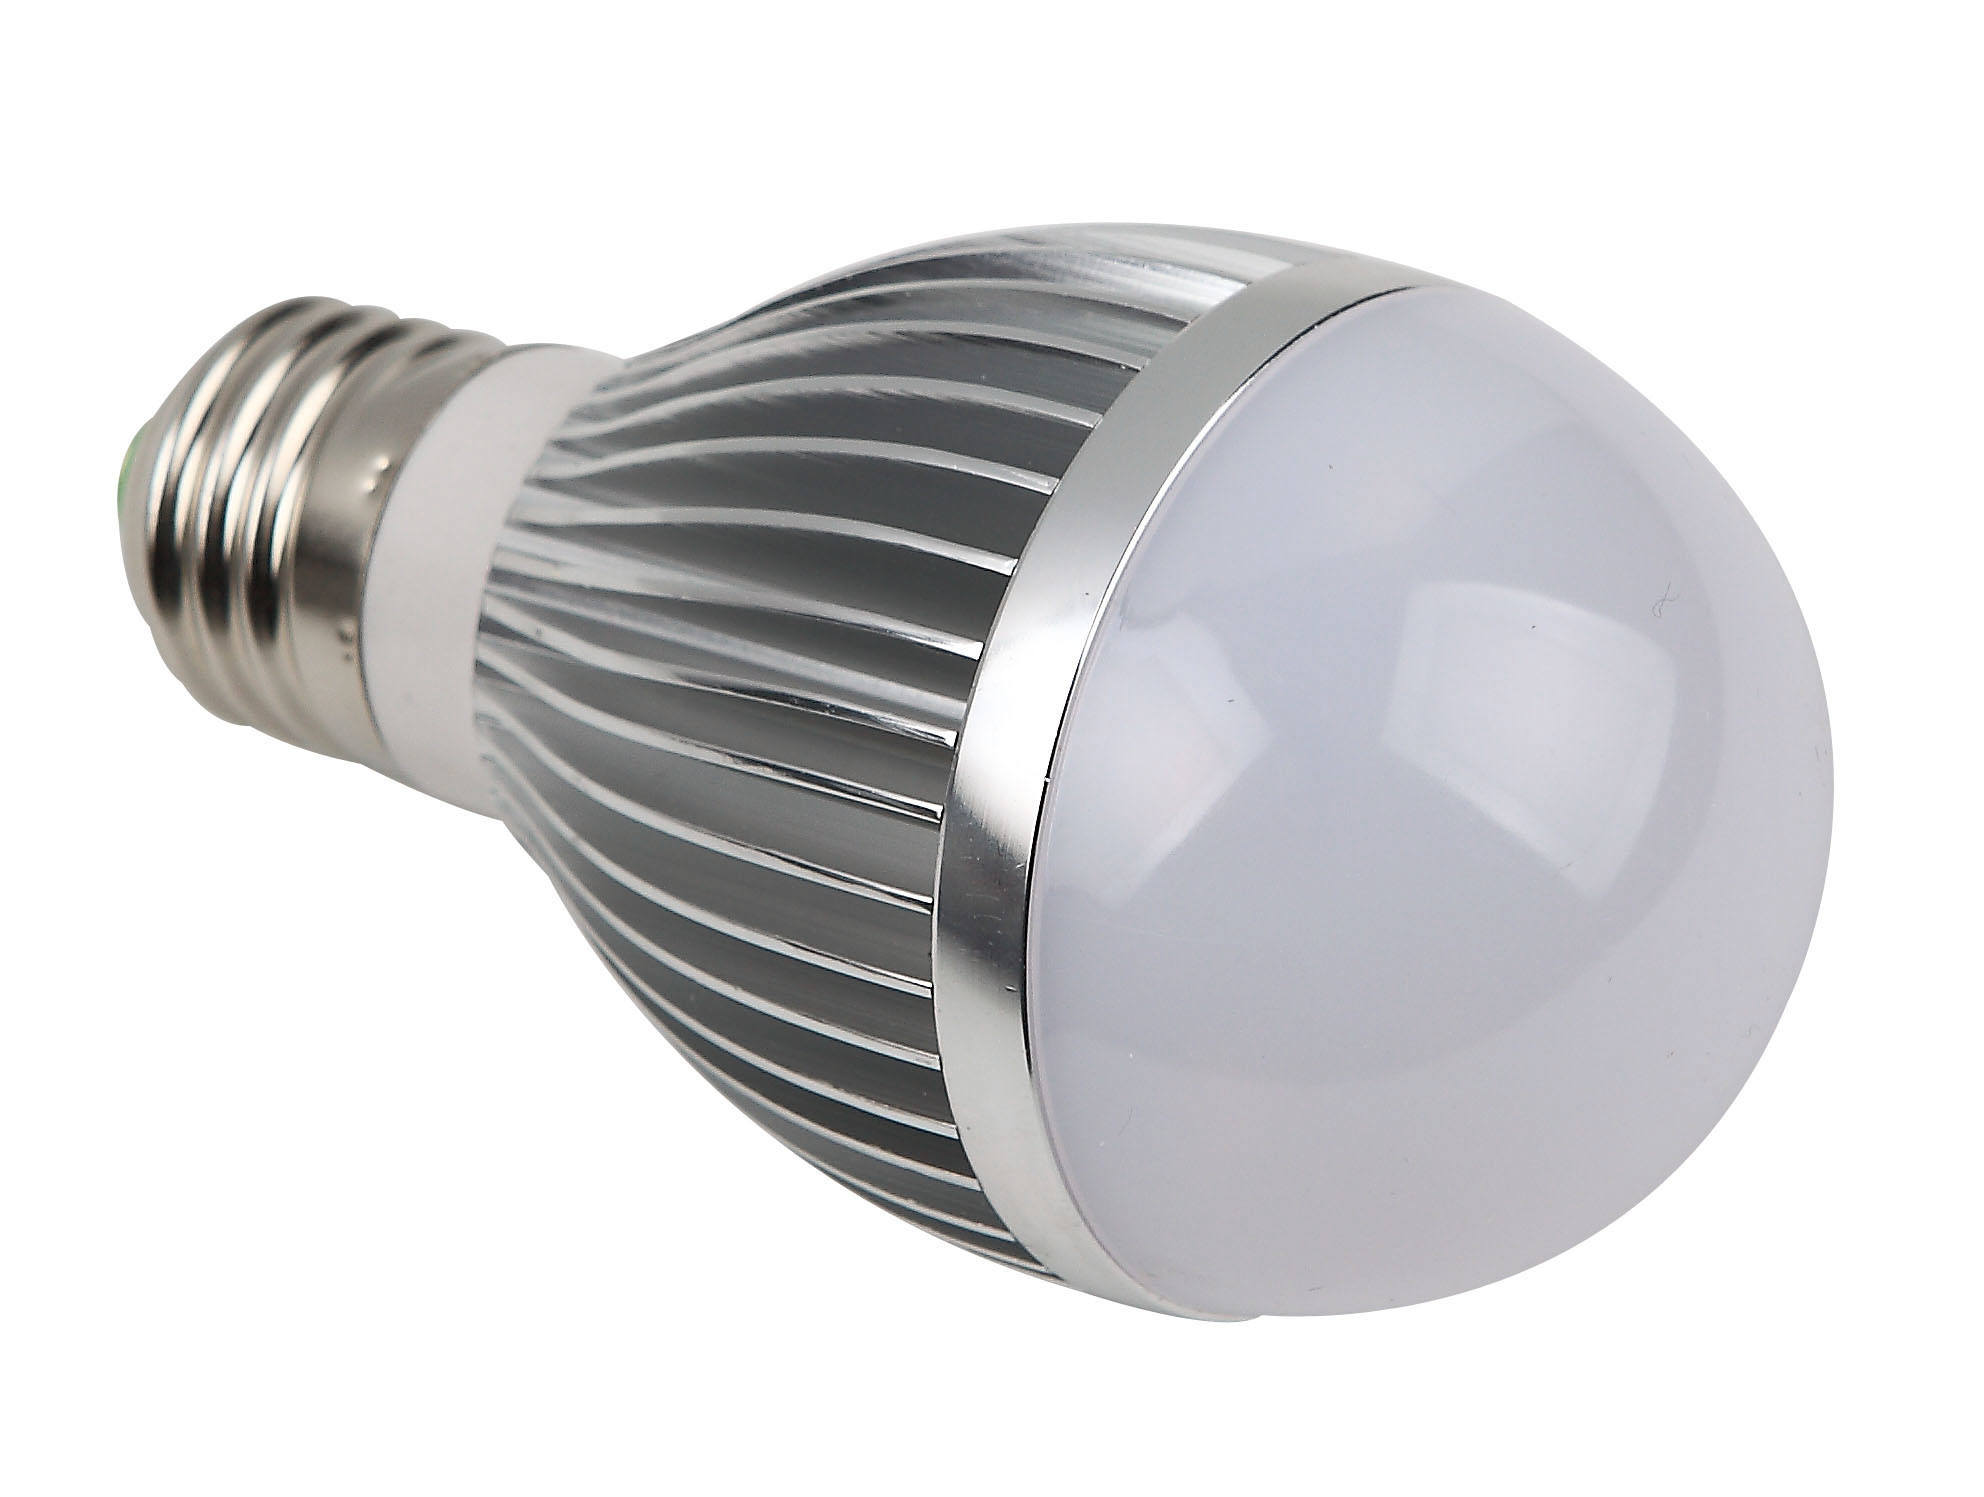 China Led Light Bulb 3w E27 China Light Bulb 3w E27 Led Bulb